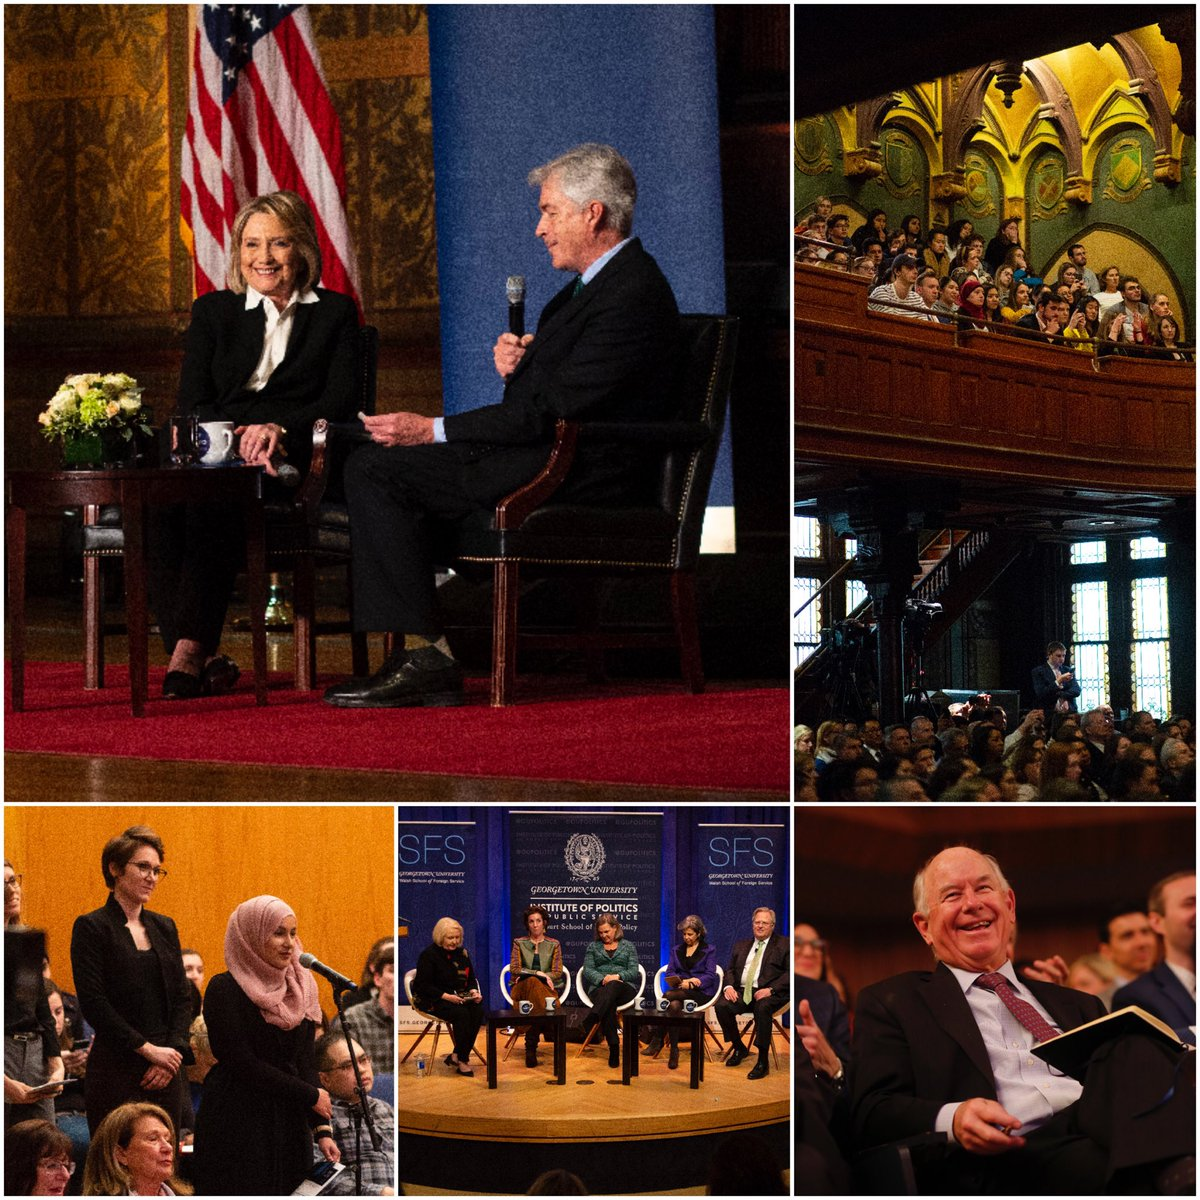 Great to have @HillaryClinton on campus for a full day of discussions on the future of diplomacy. Her message: our globally engaged @georgetownsfs students are needed more than ever. Thanks for a great event w/ @GUPolitics!